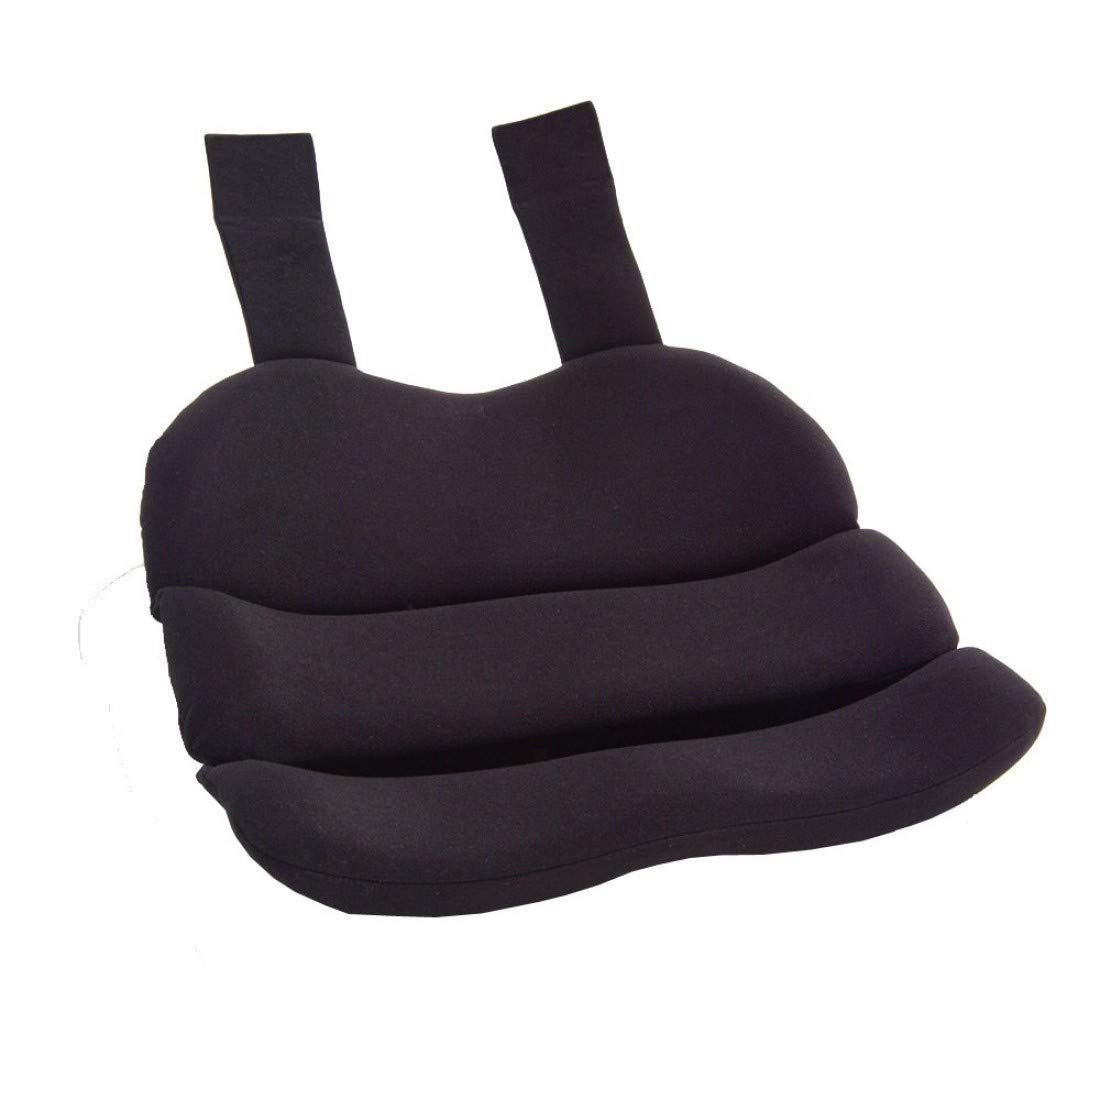 ObusForme Black Contoured Seat Cushion, Hold Pelvis And Hips In A Balanced Position, High-Density Foam For Superior Comfort, Flexible Support Panel To Evenly Distributes Body Weight by ObusForme